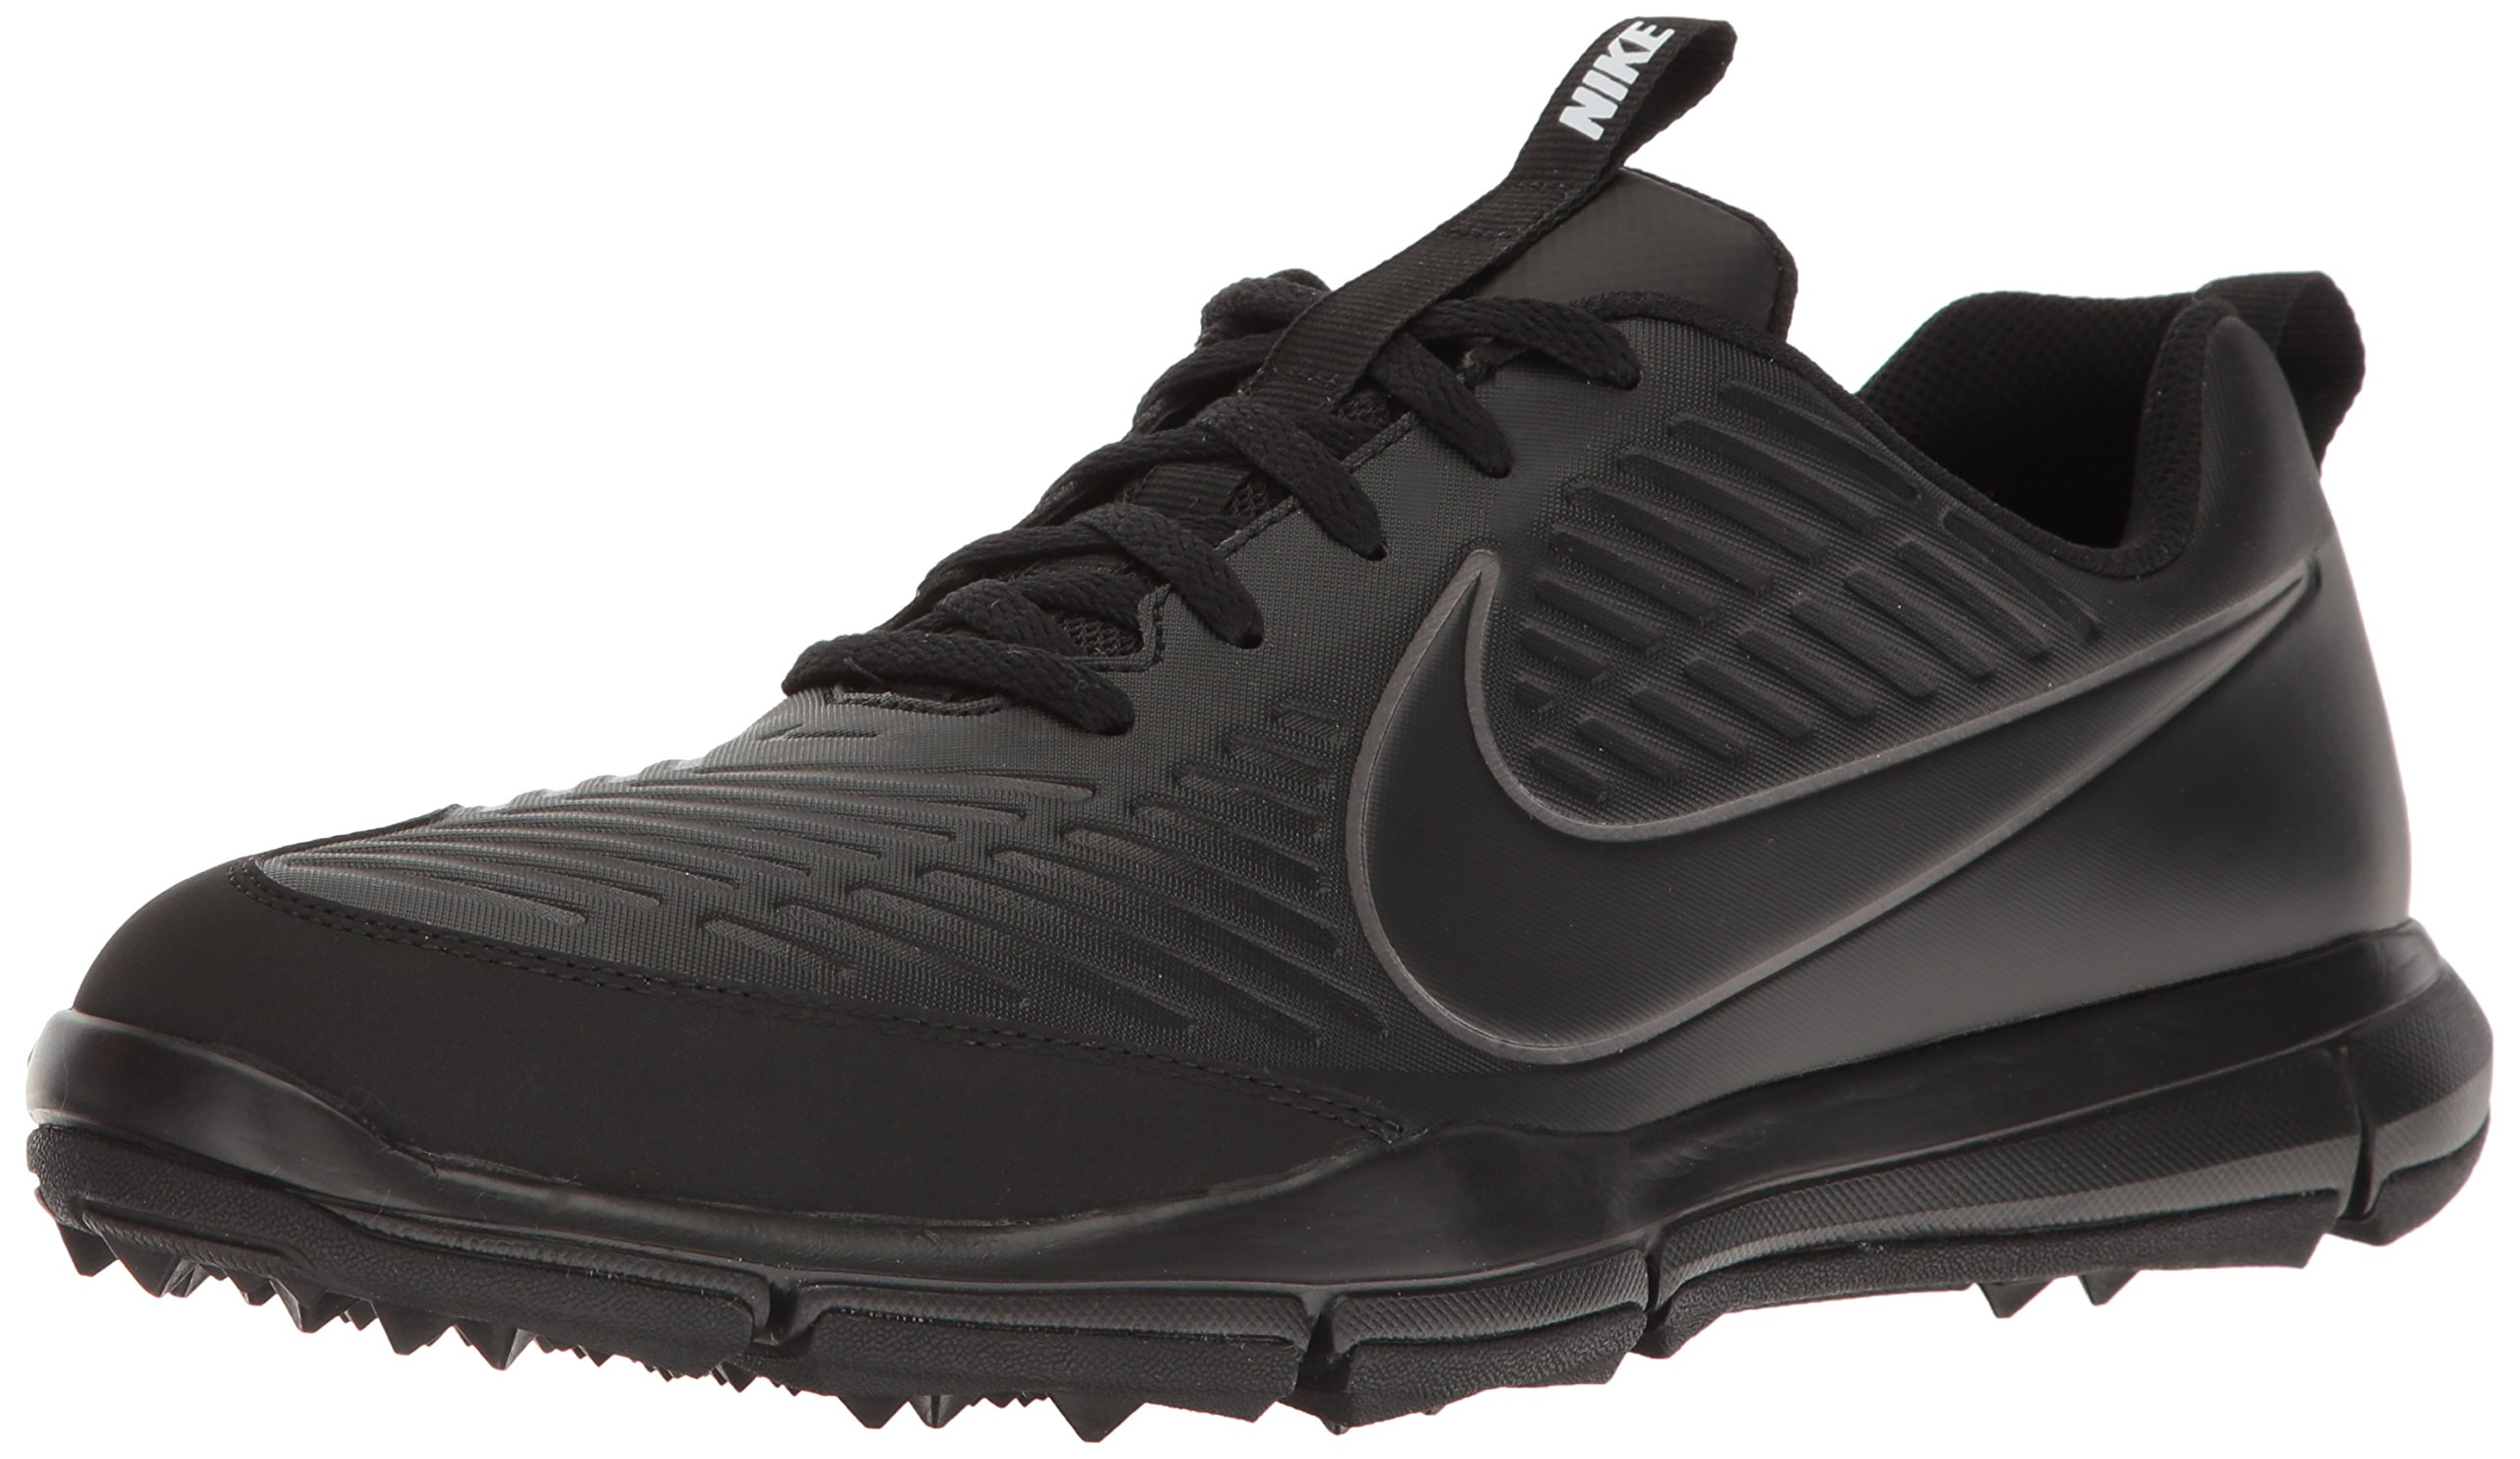 NIKE Men's Explorer 2 Golf Shoe, Black/Black/Metallic Dark Grey, 8 M US